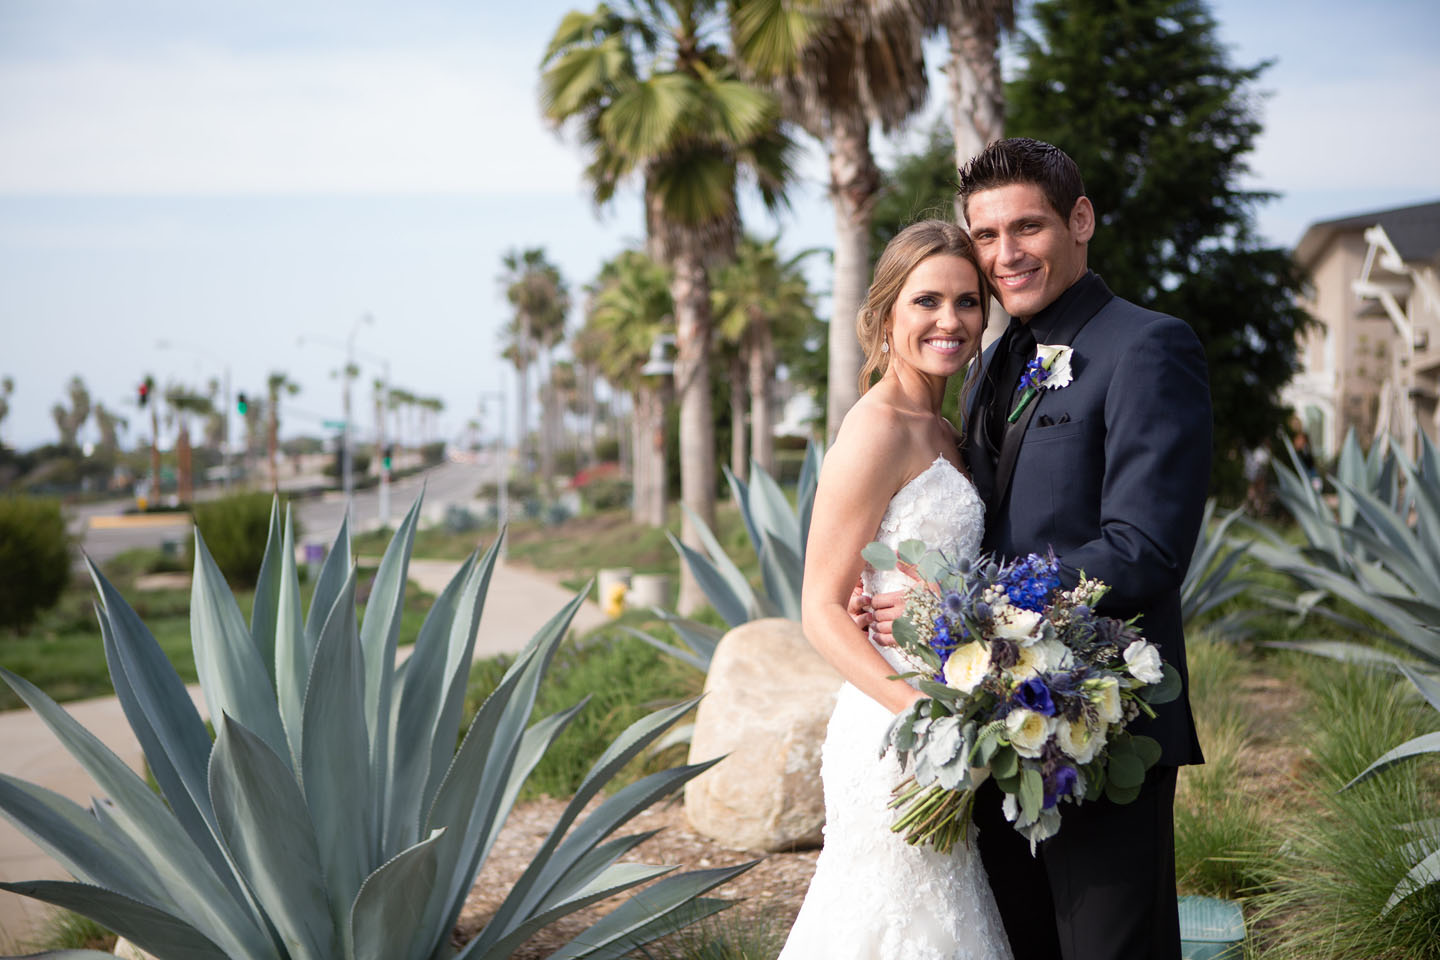 Bride and Groom photo after their wedding in san diego